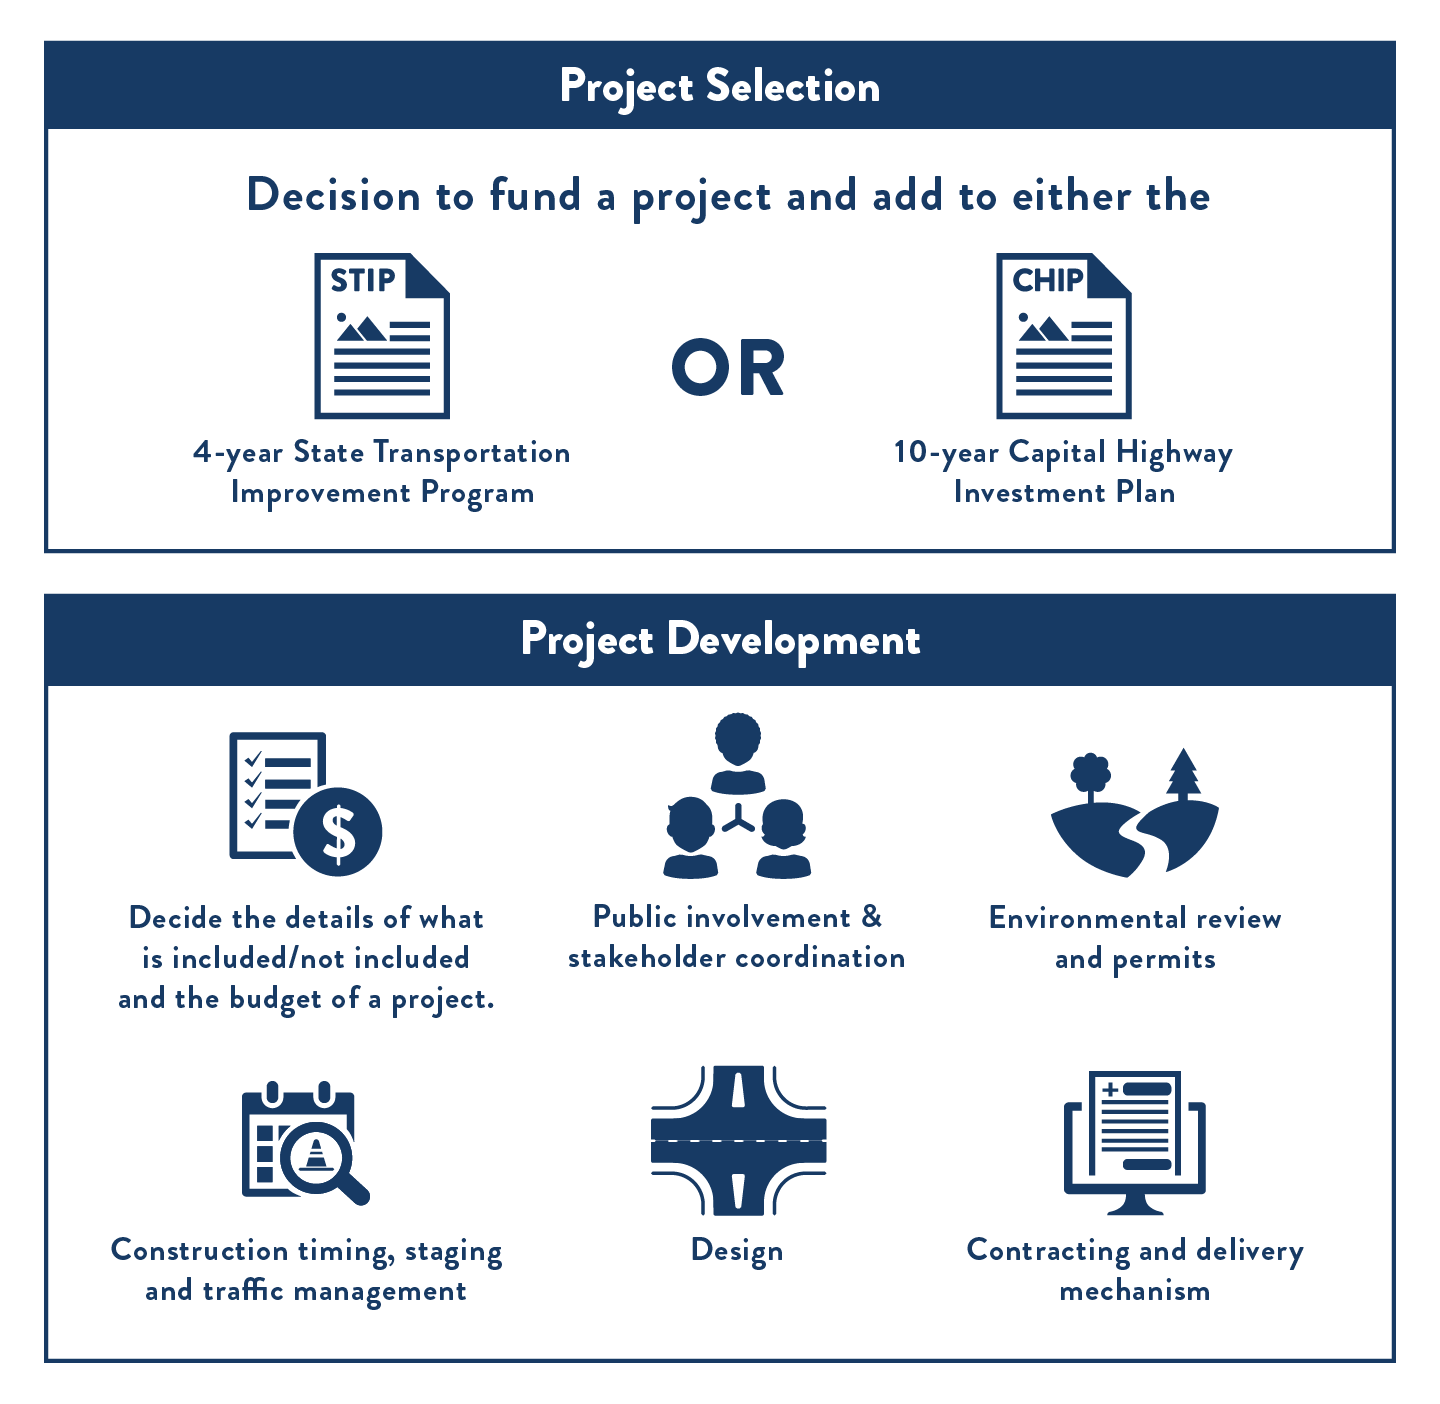 Title: Comparing Project Selection and Development - Description: This chart compares project selection and project development. Project selection is the decision to fund a project and add to the list of planned and programmed projects in either the 4 year State Transportation Improvement Program or the 10 year Capital Highway Investment Plan. Project development includes: process of deciding the details of what is included/not included and the budget of a project, public involvement and stakeholder coordination, environmental review and permits, design, construction timing, staging and traffic management, and contracting and delivery mechanism.